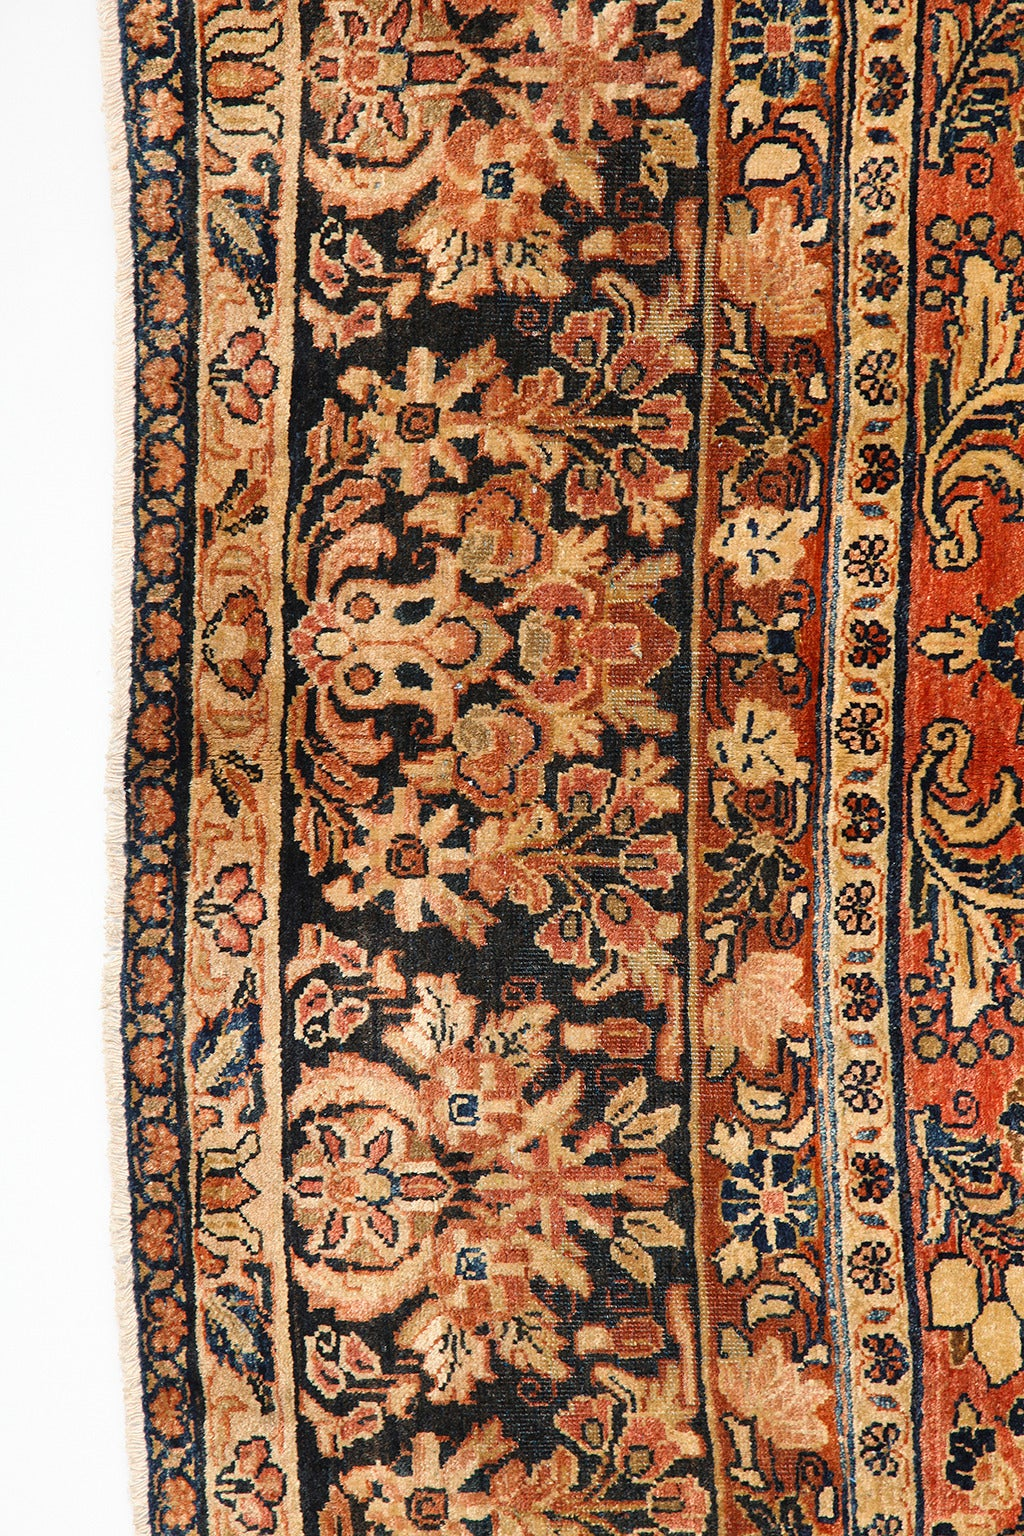 Persian Sarouk Carpet with Pure Wool Pile and Natural Vegetable Dyes, circa 1910 For Sale 1